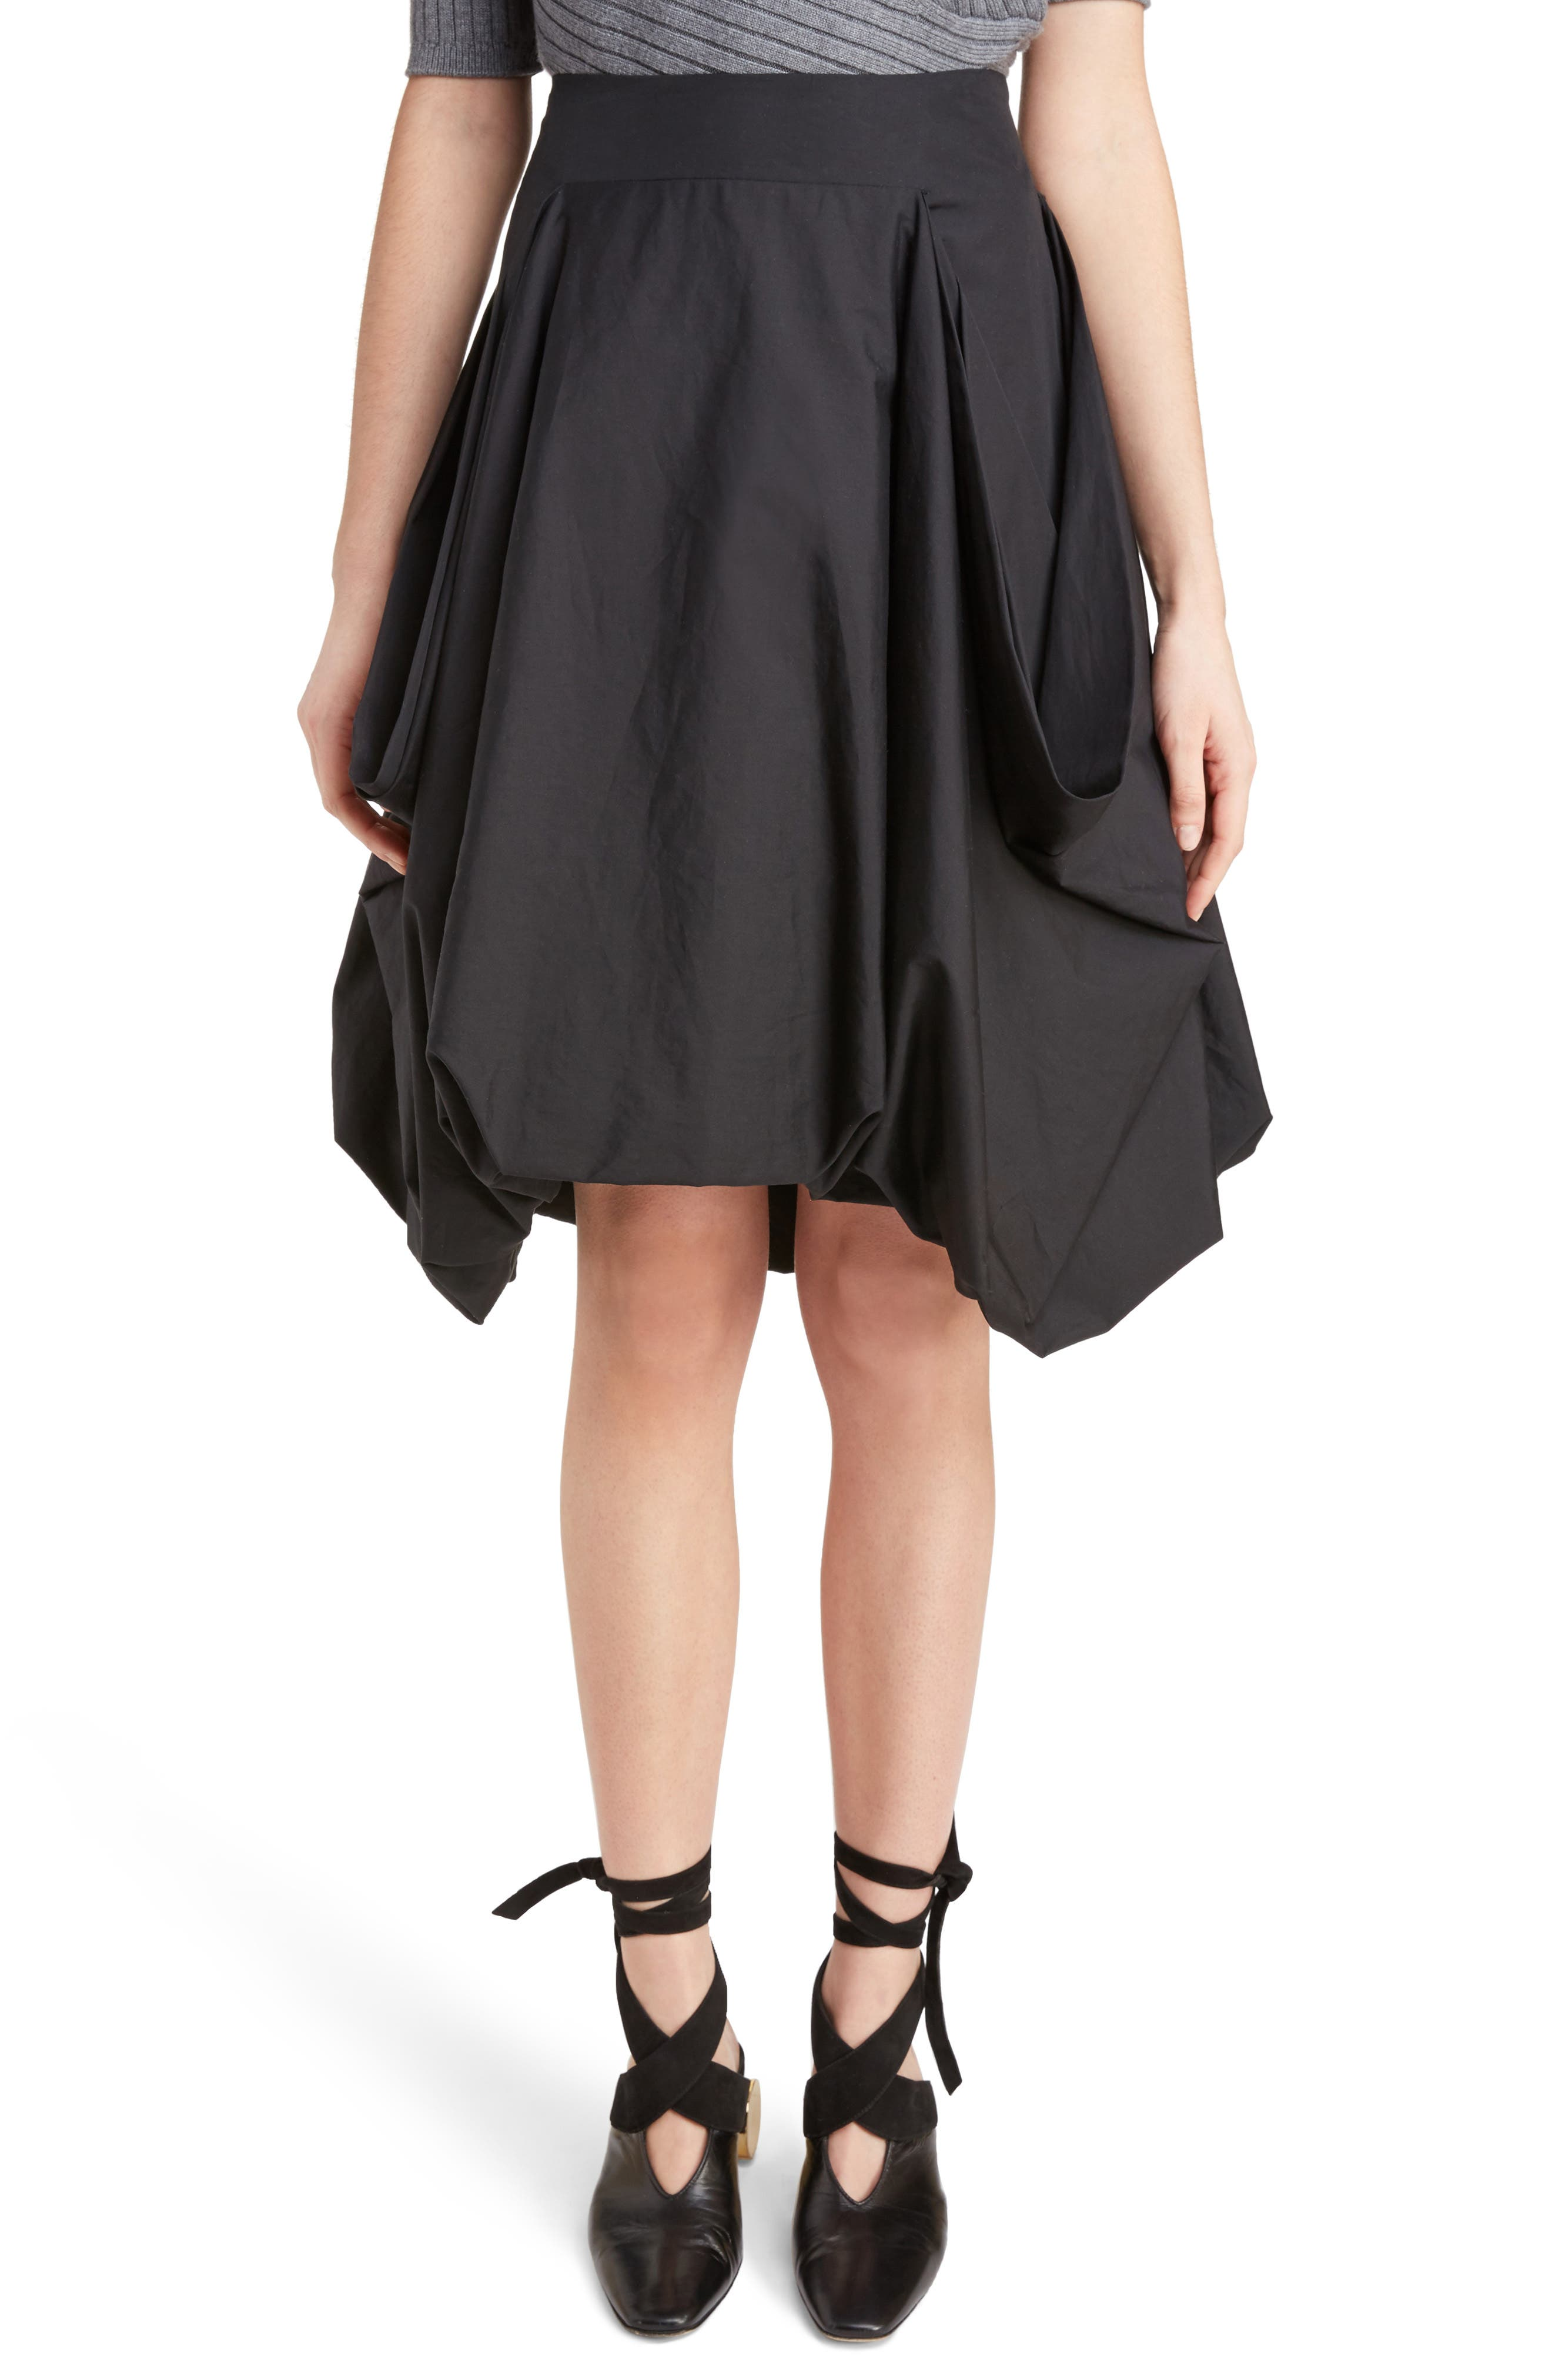 J.W.ANDERSON Drape Pockets Pleated Skirt,                             Main thumbnail 1, color,                             001